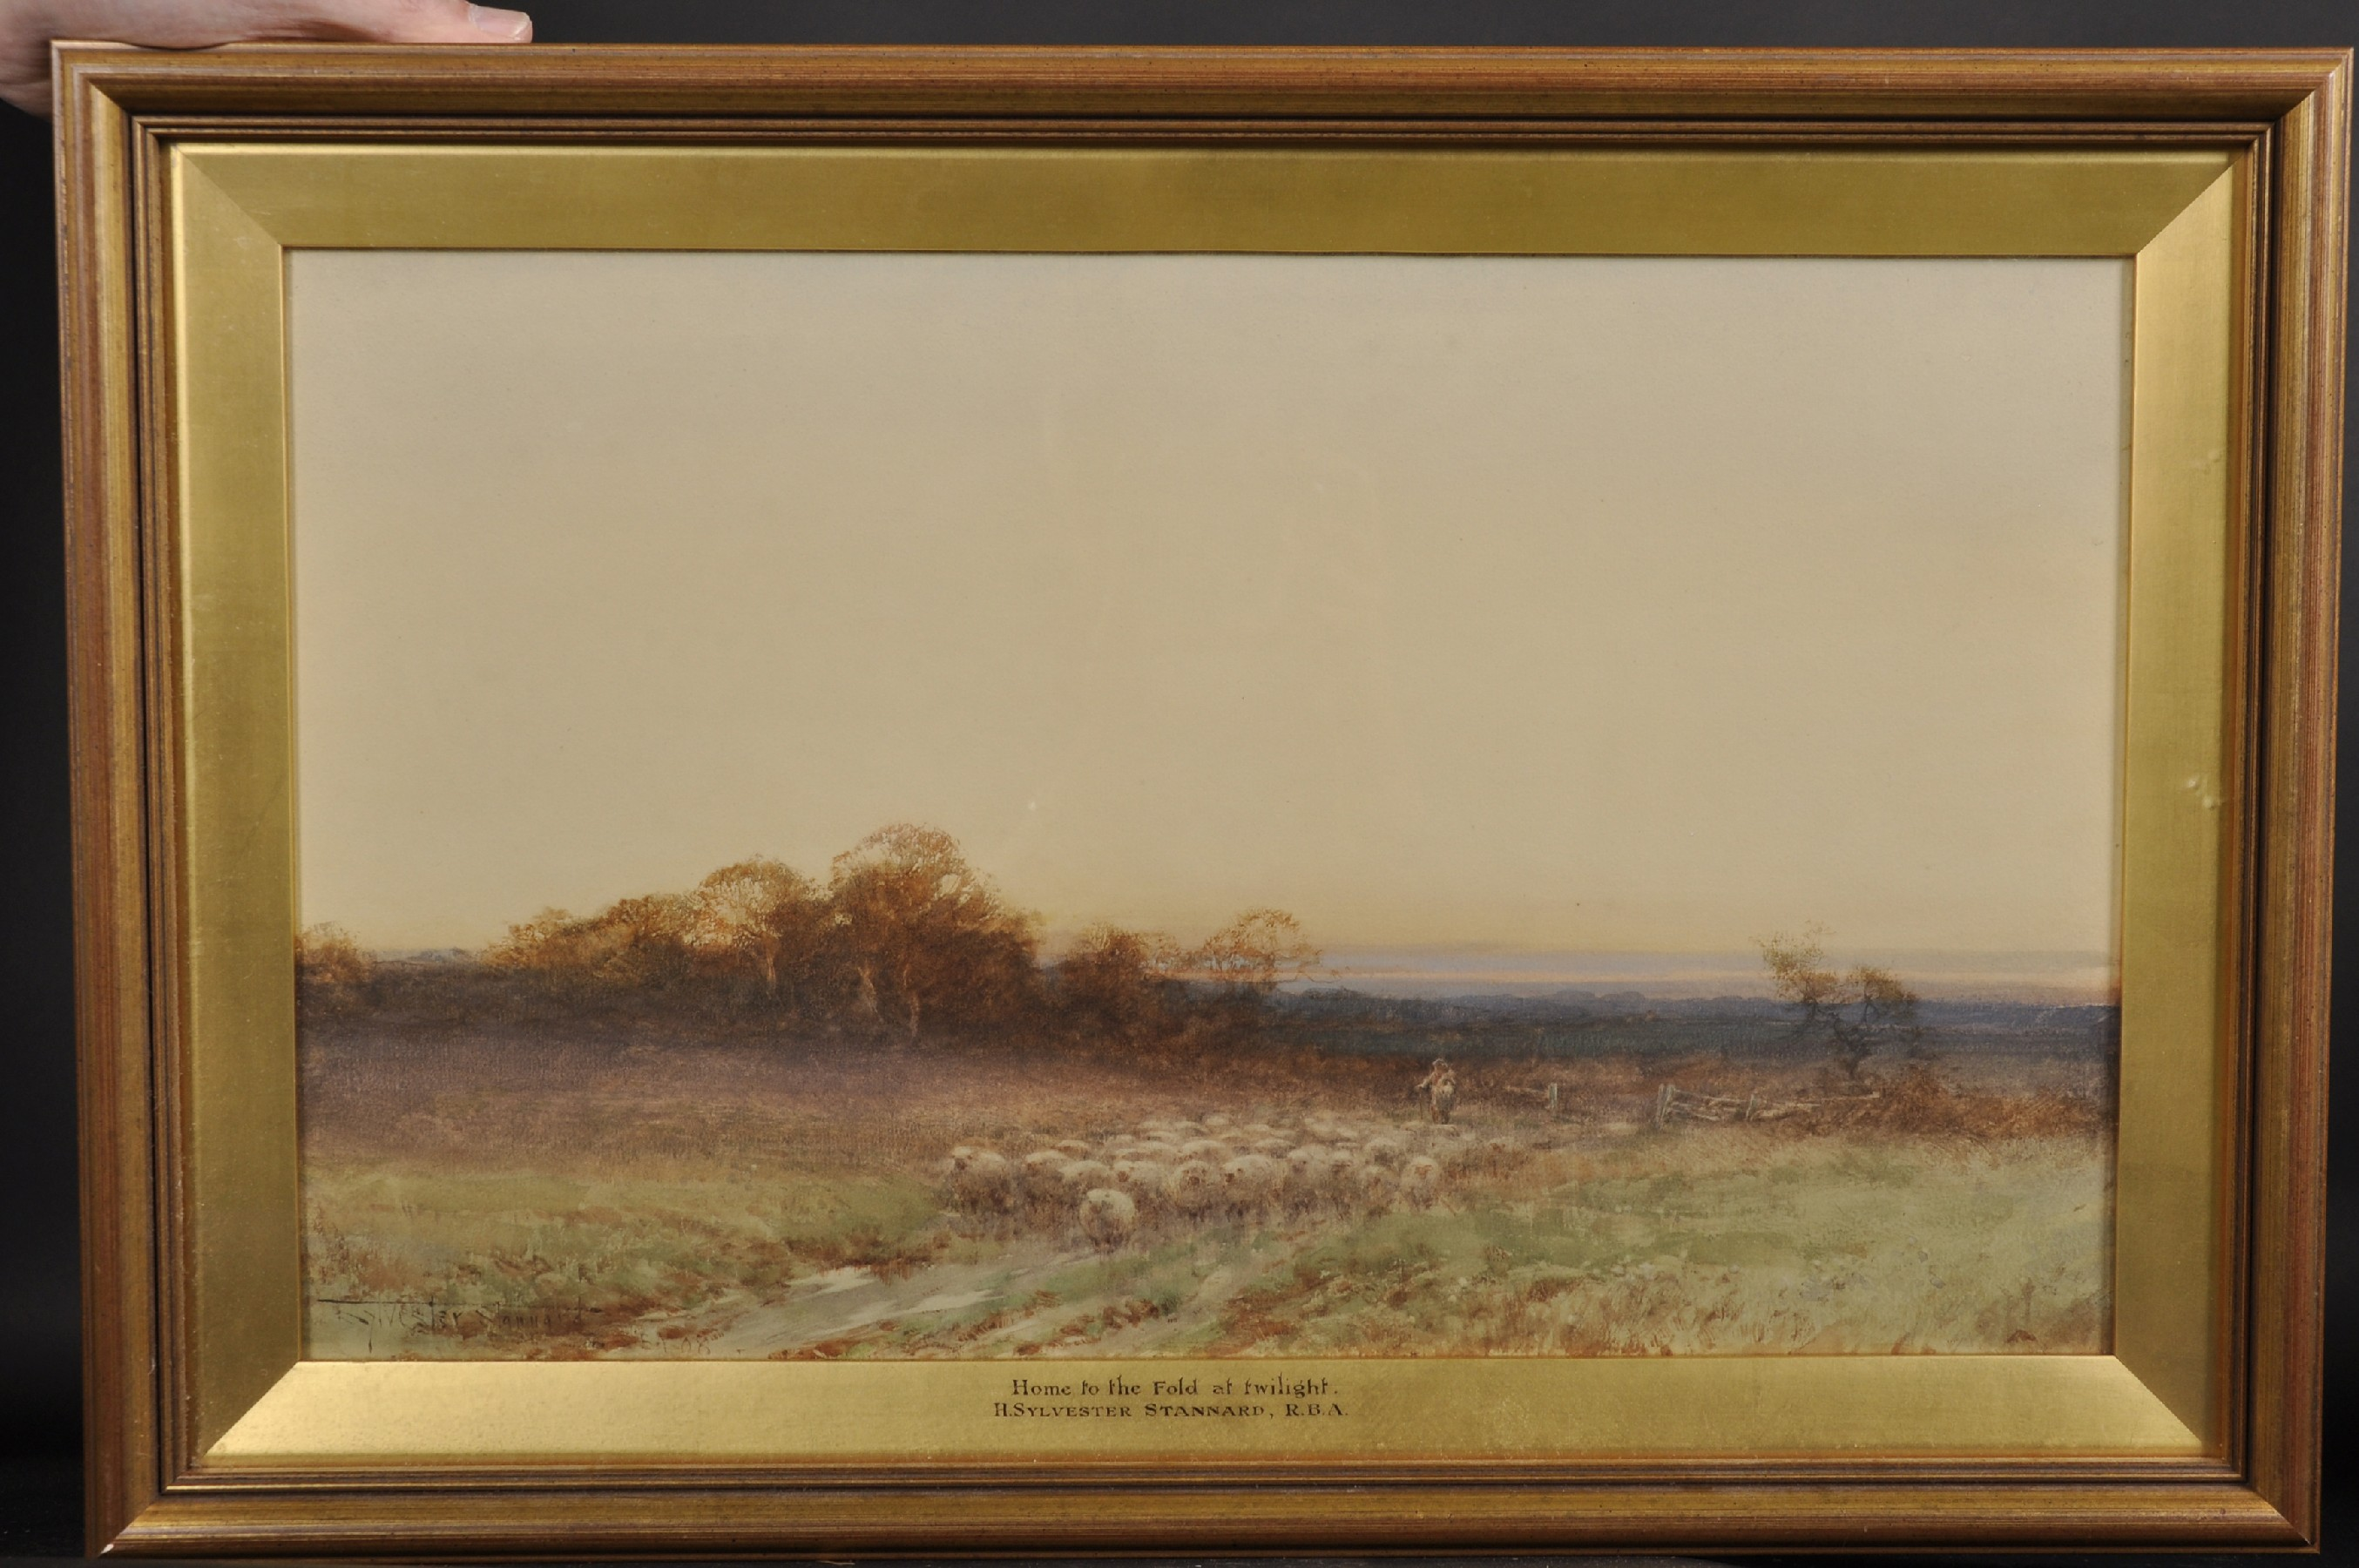 """Henry John Sylvester Stannard (1870-1951) British. """"Home to the Fold at Twilight"""", with a Shepherd - Image 2 of 4"""